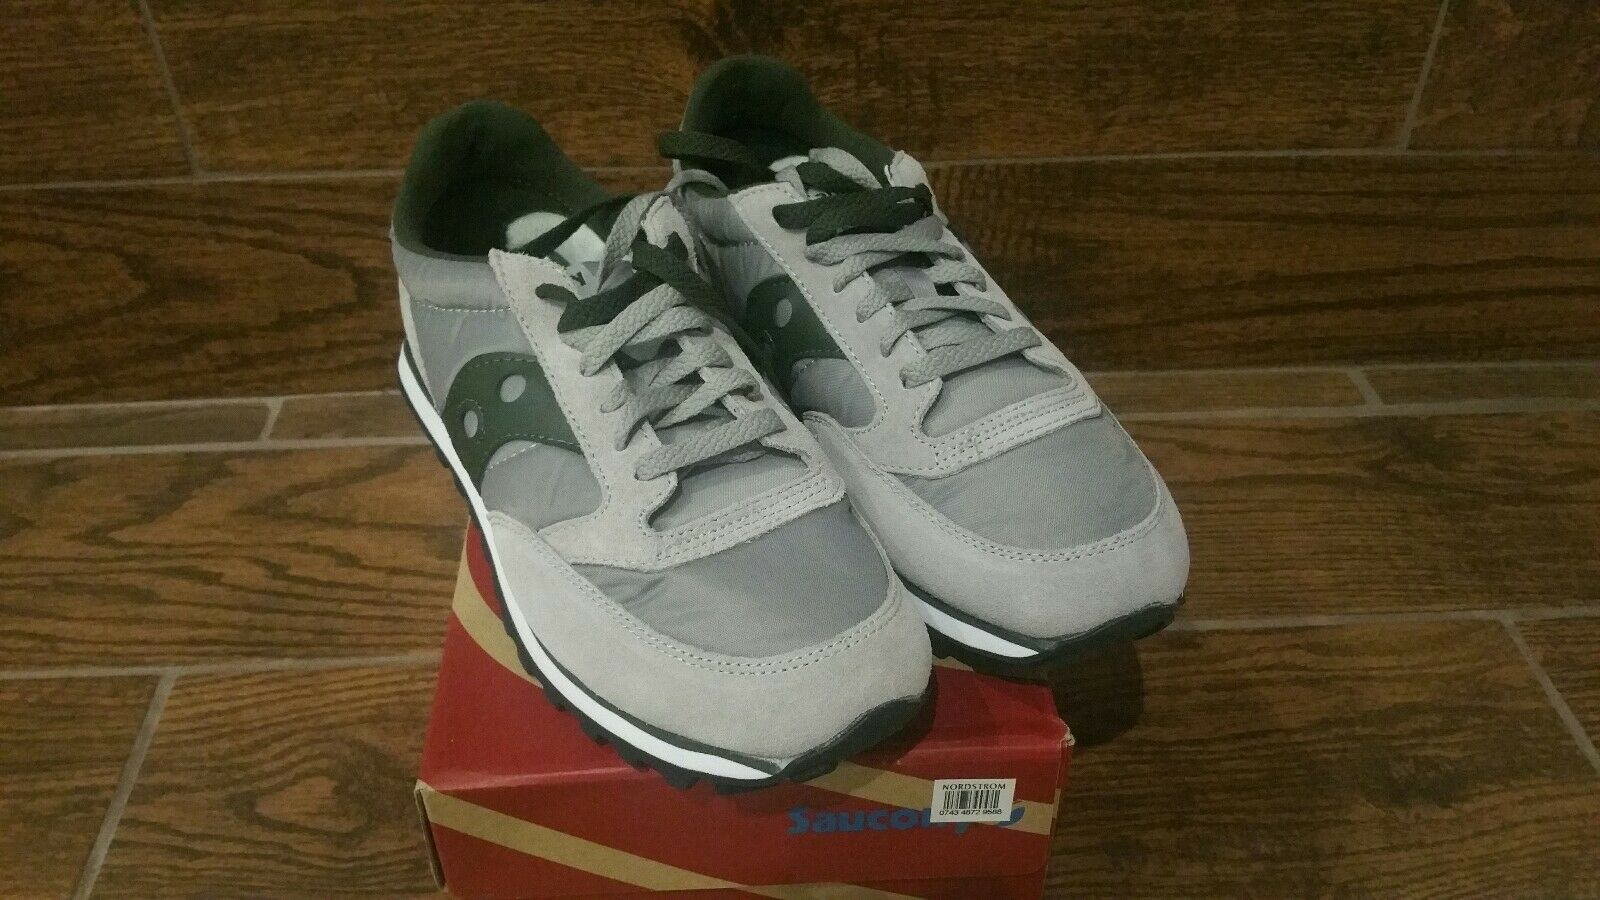 SAUCONY - SAUCONY JAZZ ORIGINAL VINTAGE VINTAGE VINTAGE TRAINERS - GREY, YELLOW 10 green ad0e72